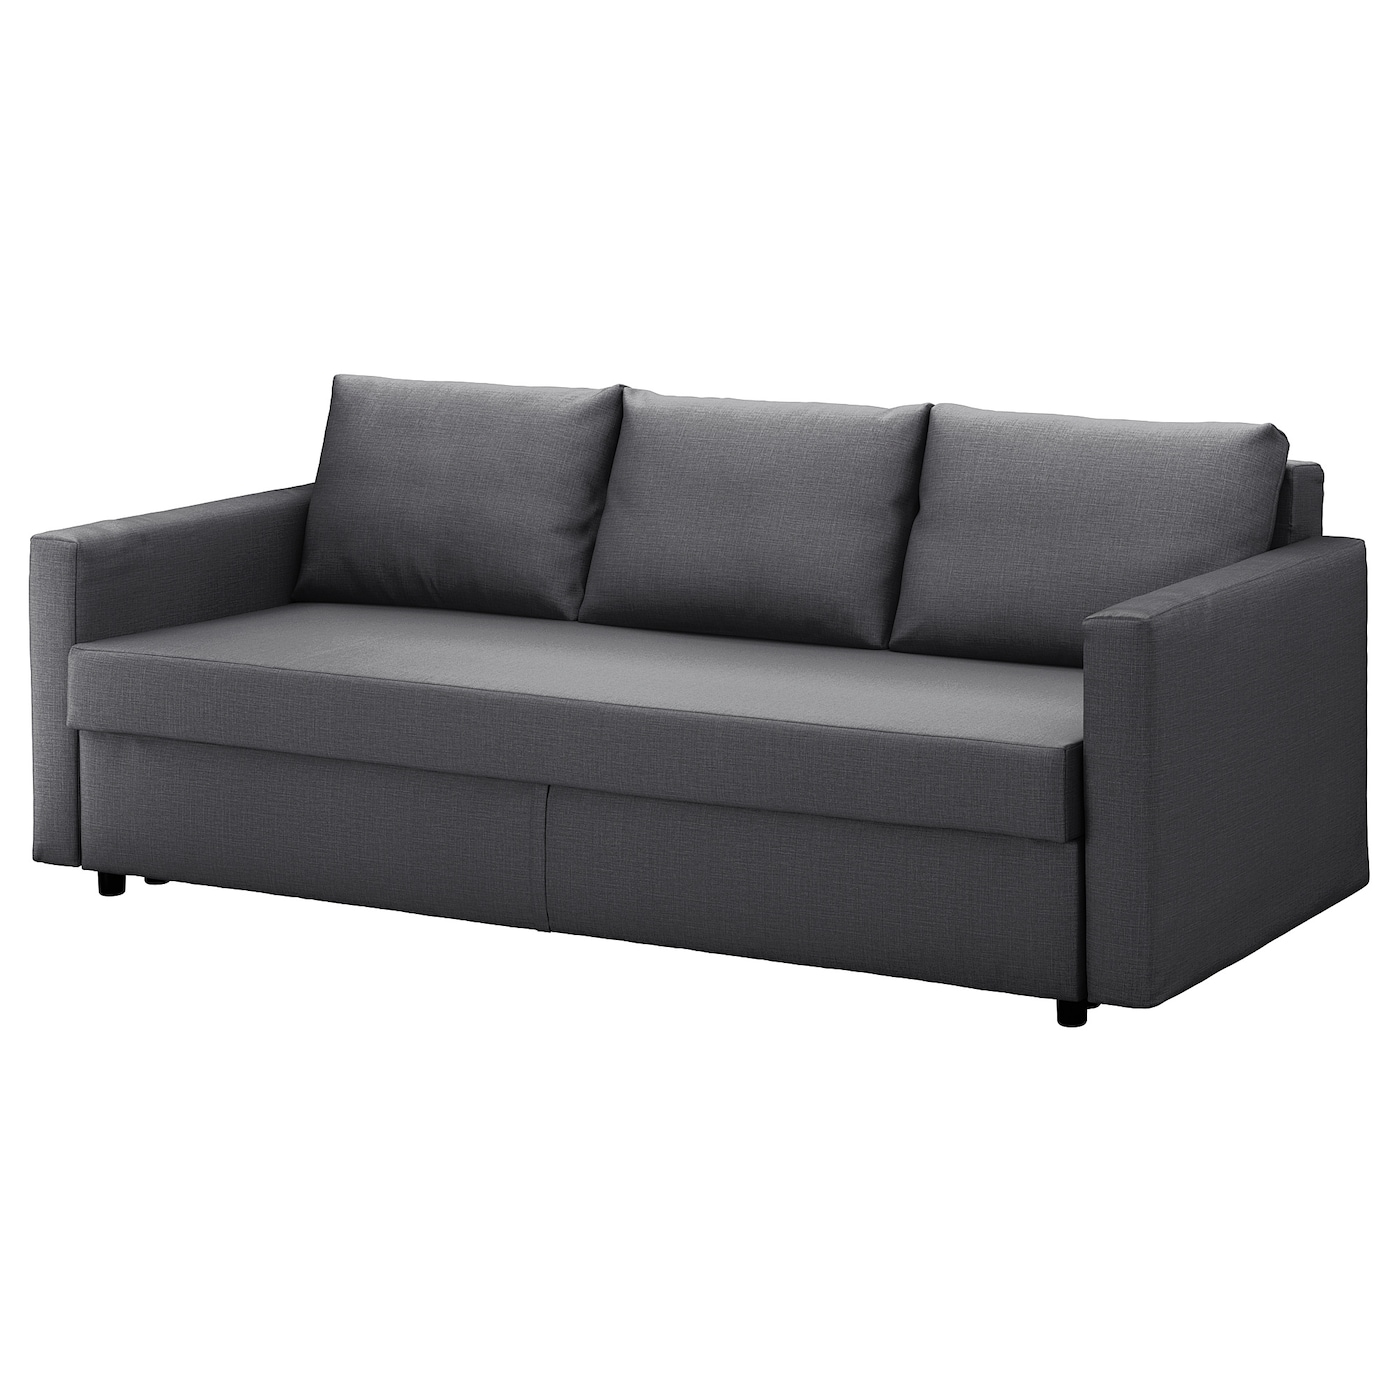 - FRIHETEN Sofa-bed - Skiftebo Dark Gray - IKEA